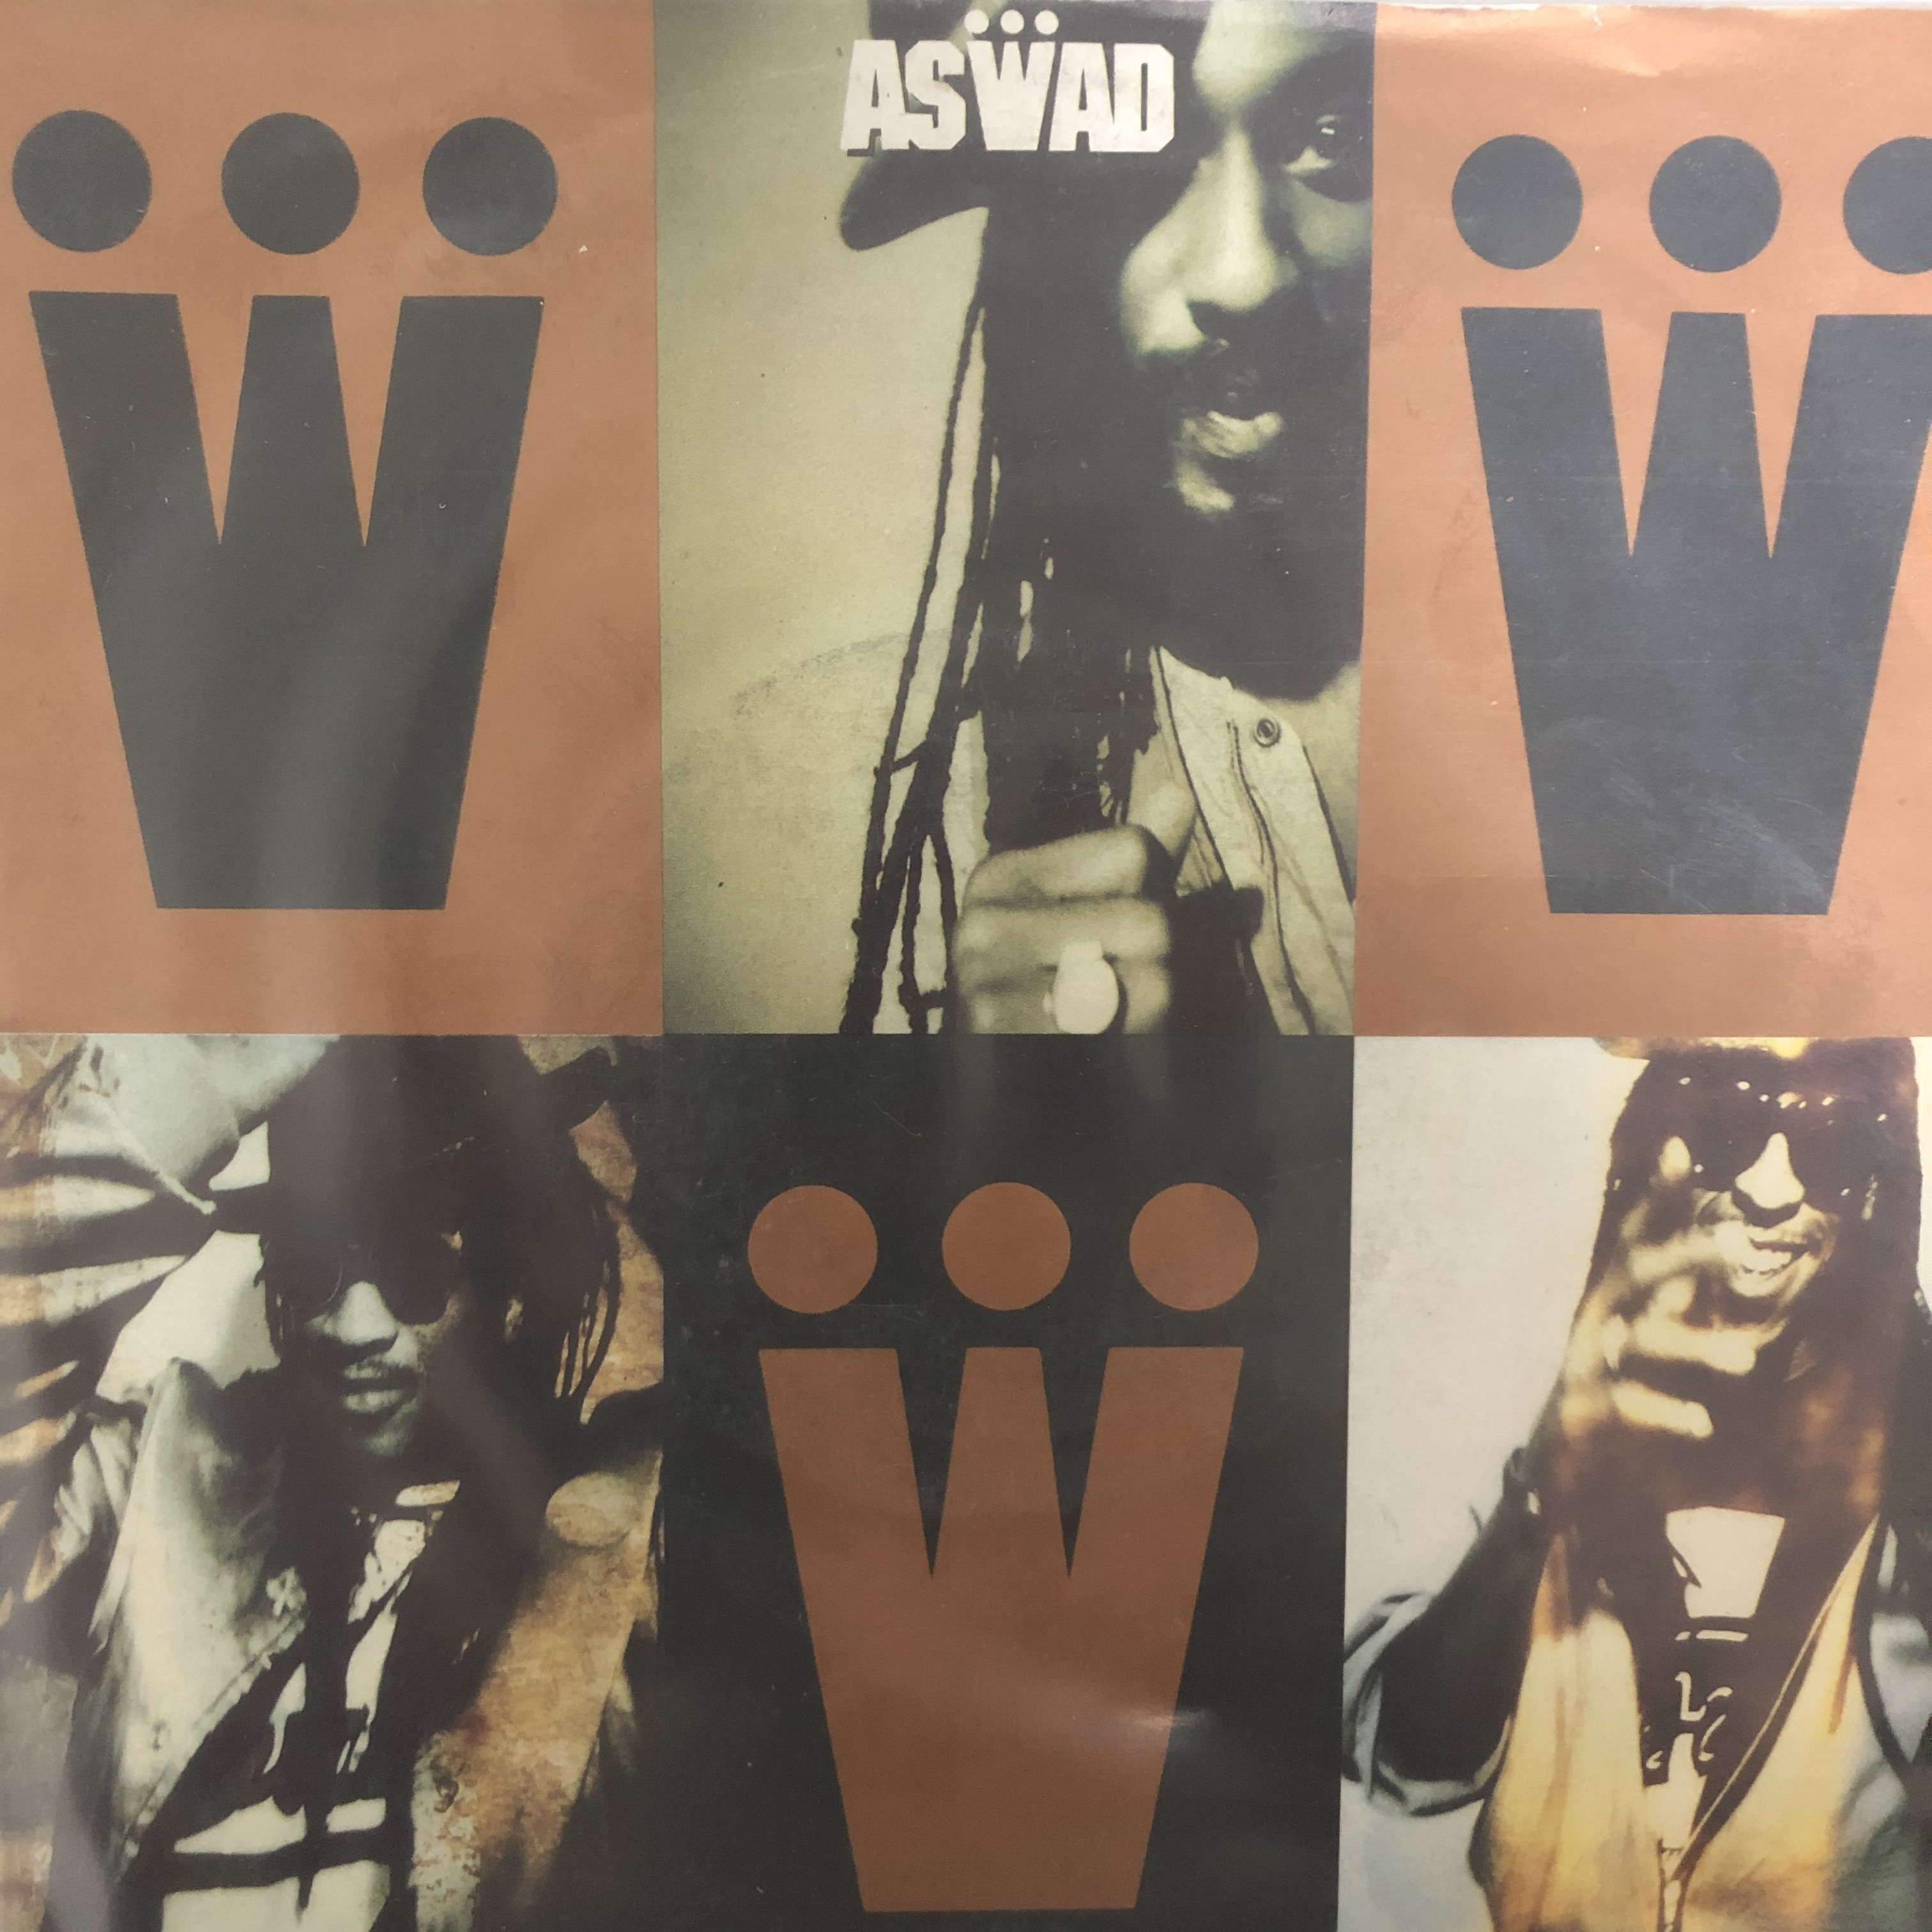 Aswad - Smile / Old Fire Stick【7-20407】